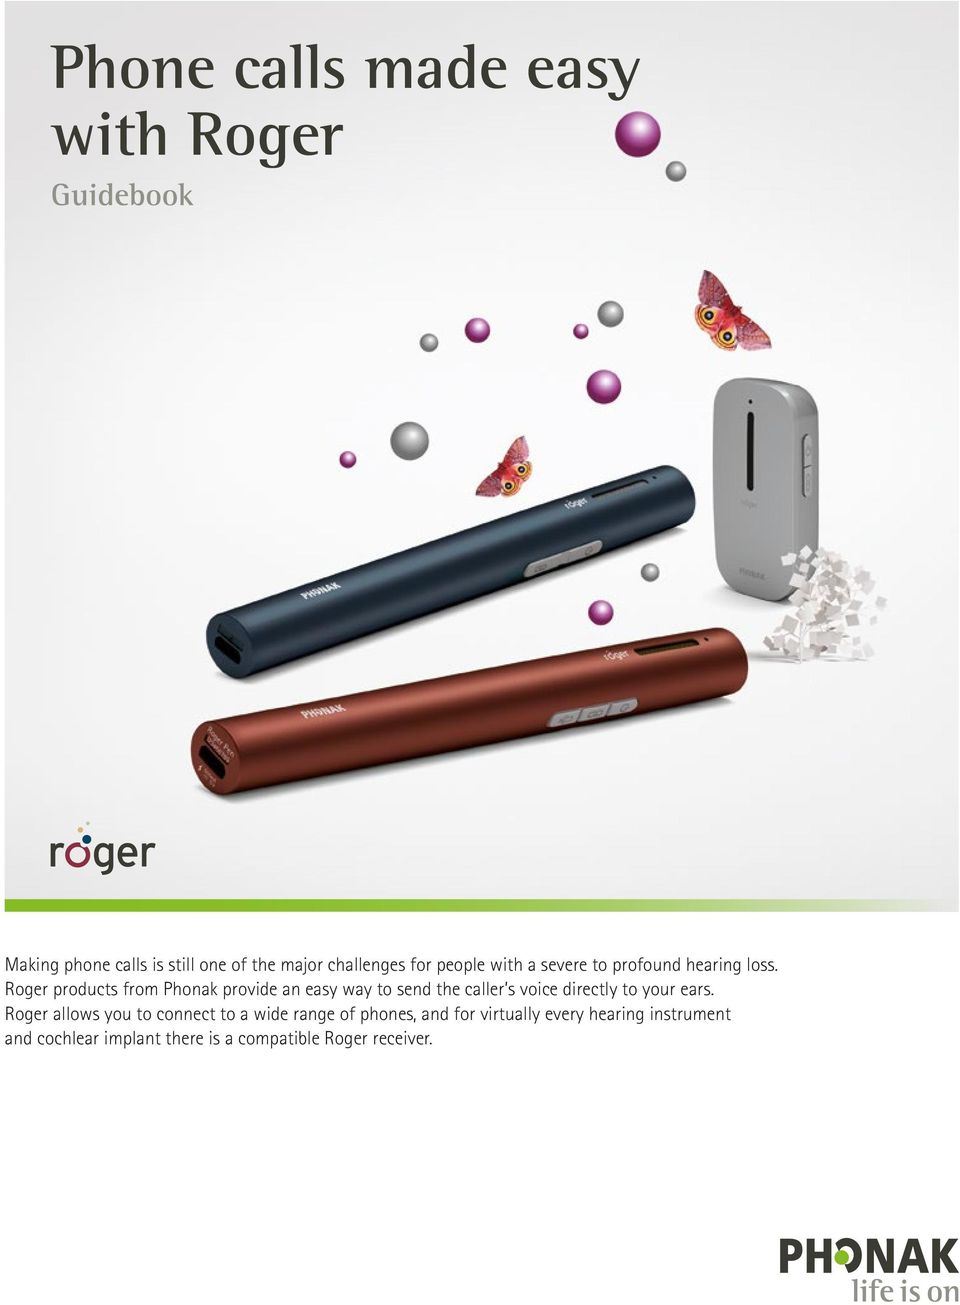 Roger products from Phonak provide an easy way to send the caller s voice directly to your ears.